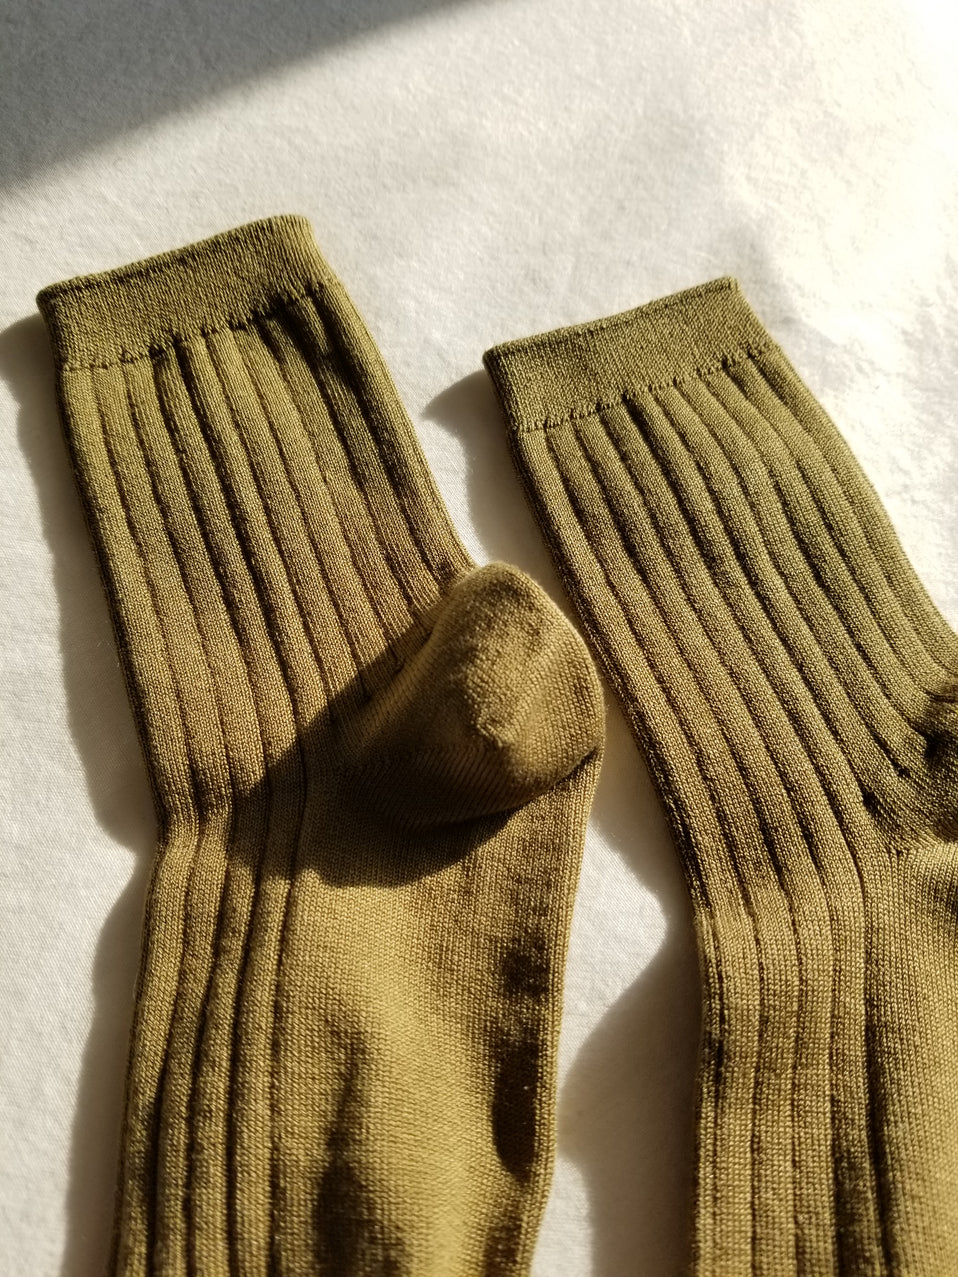 The Mercerized Cotton Socks in Pesto